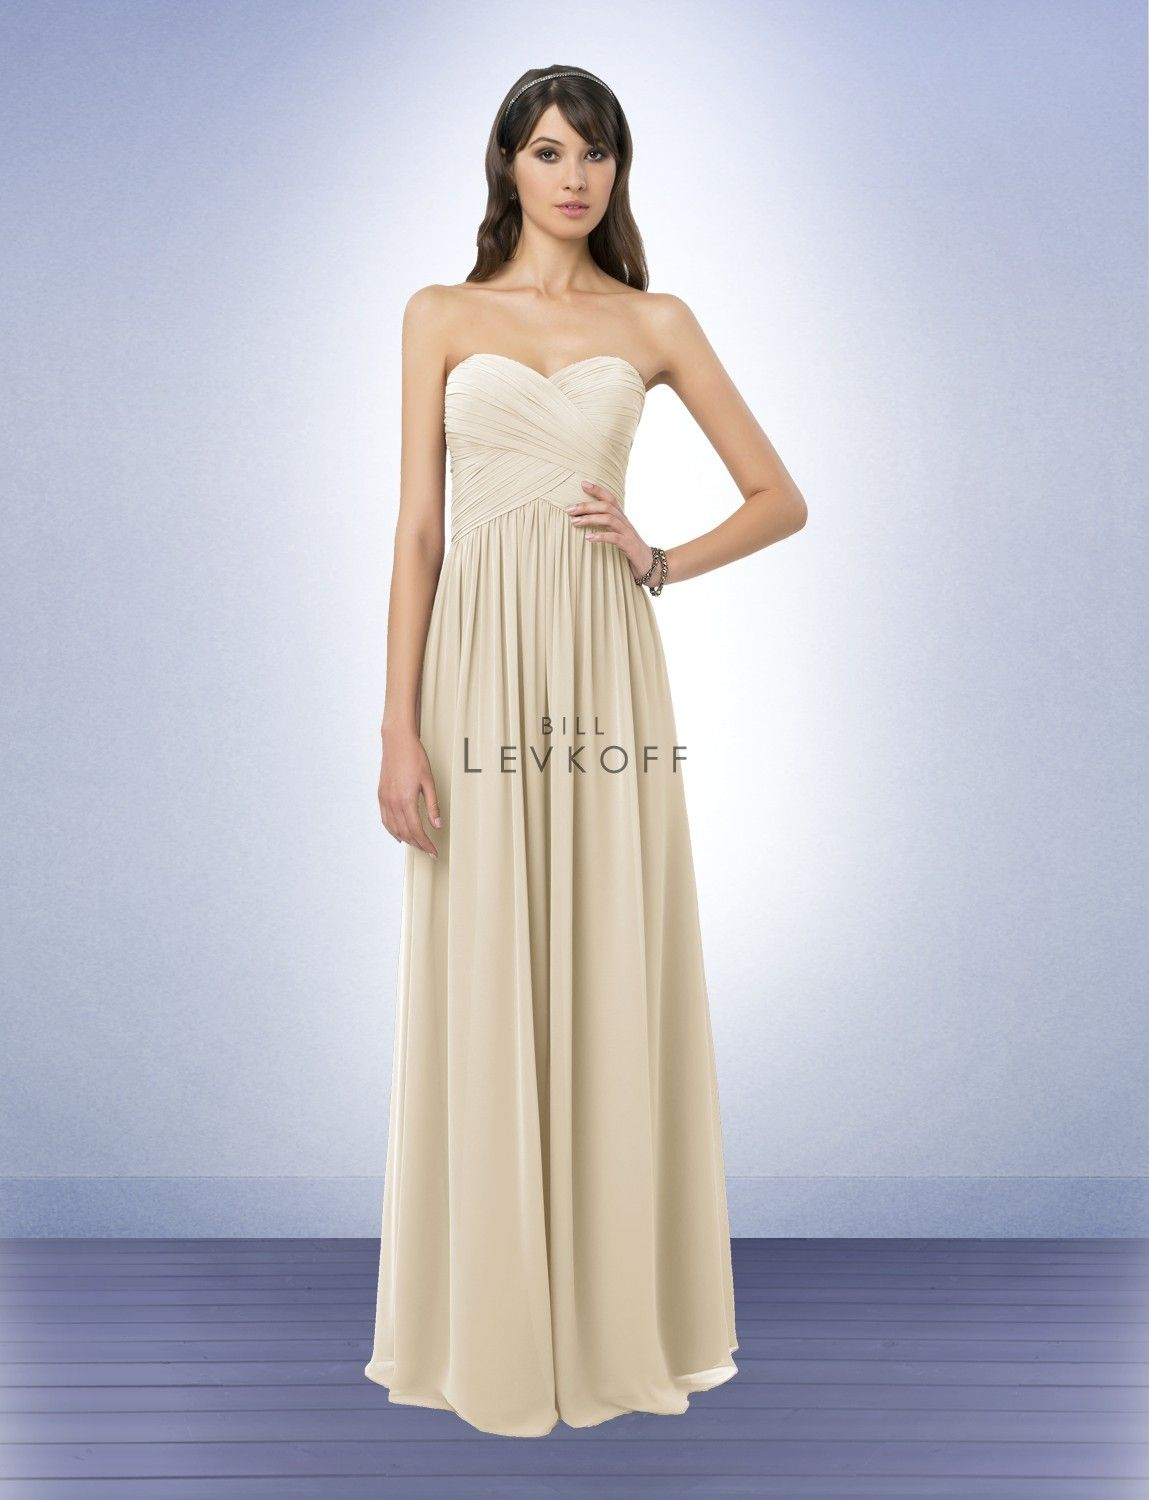 63896112ab2 Champagne Bridesmaid Dress Bill Levkoff Bridesmaid Dresses